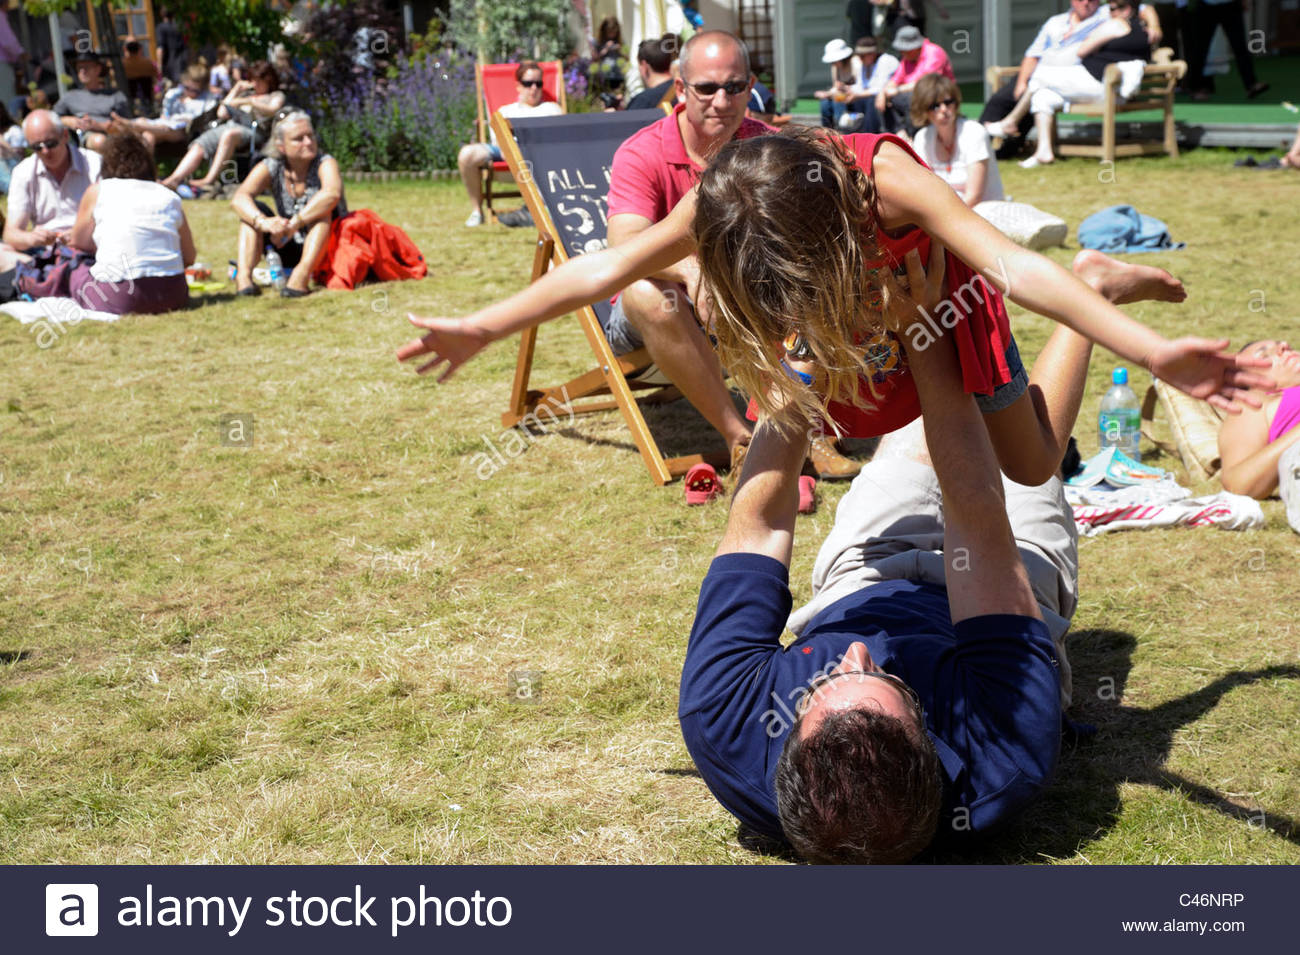 Hay on Wye, Wales, UK. Hay festival father playing with daughter on grass. - Stock Image